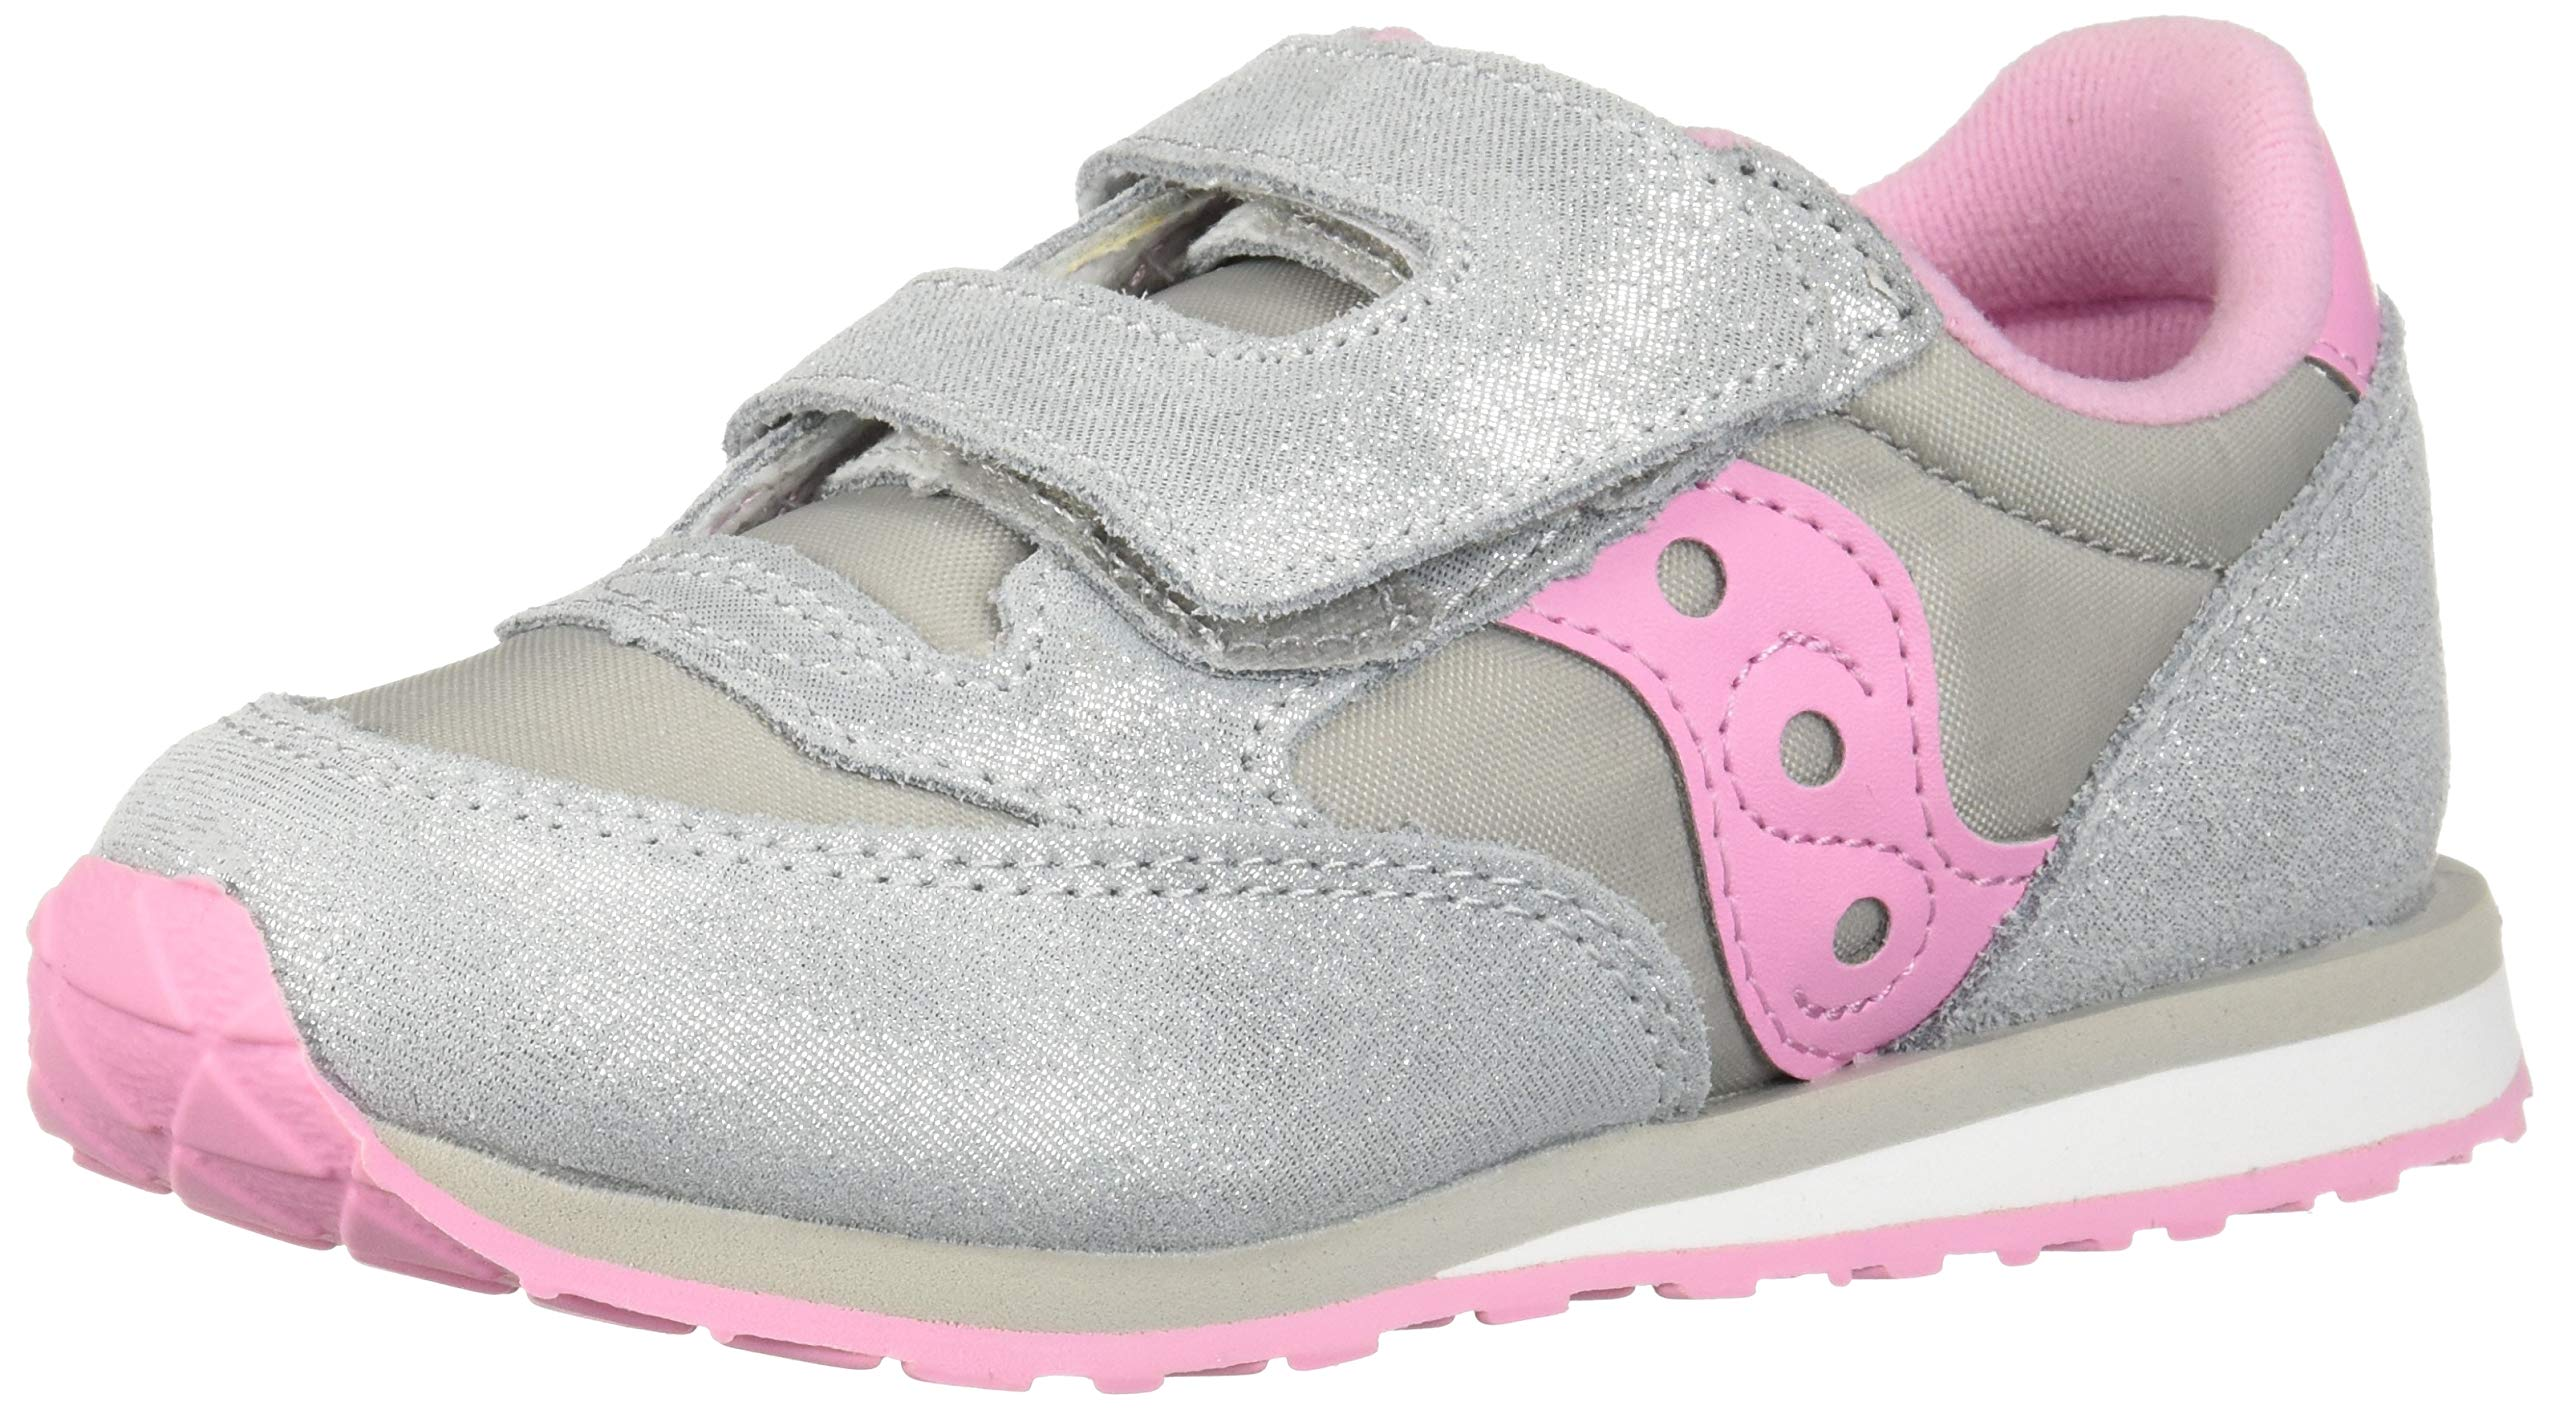 Saucony Baby Jazz Hook & Loop Sneaker Little Kid 8.5 Silver/Pink